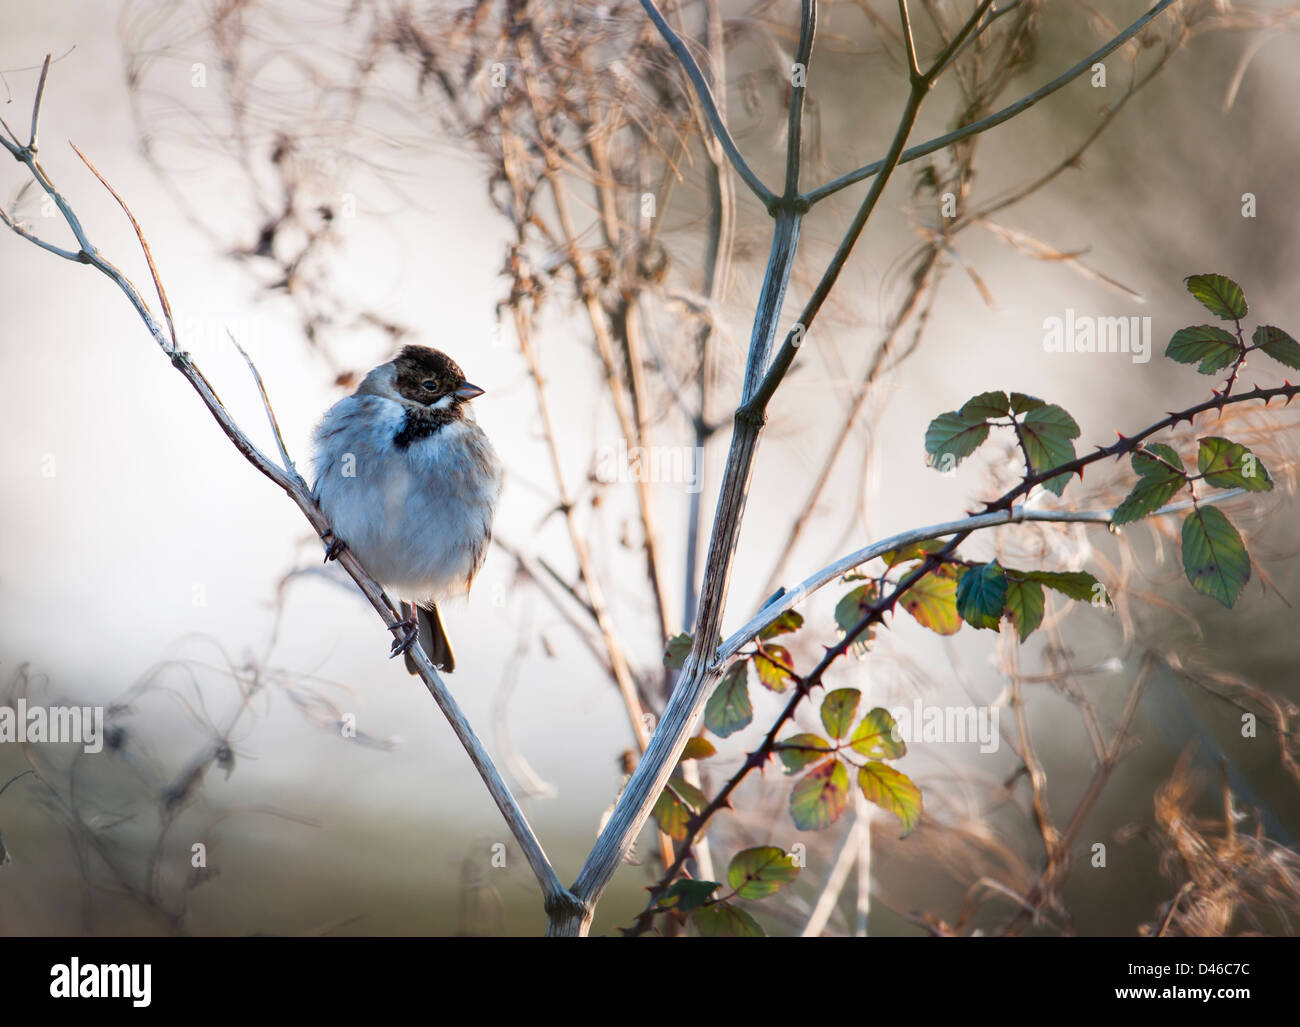 Reed Bunting perched in a hedgerow - Stock Image